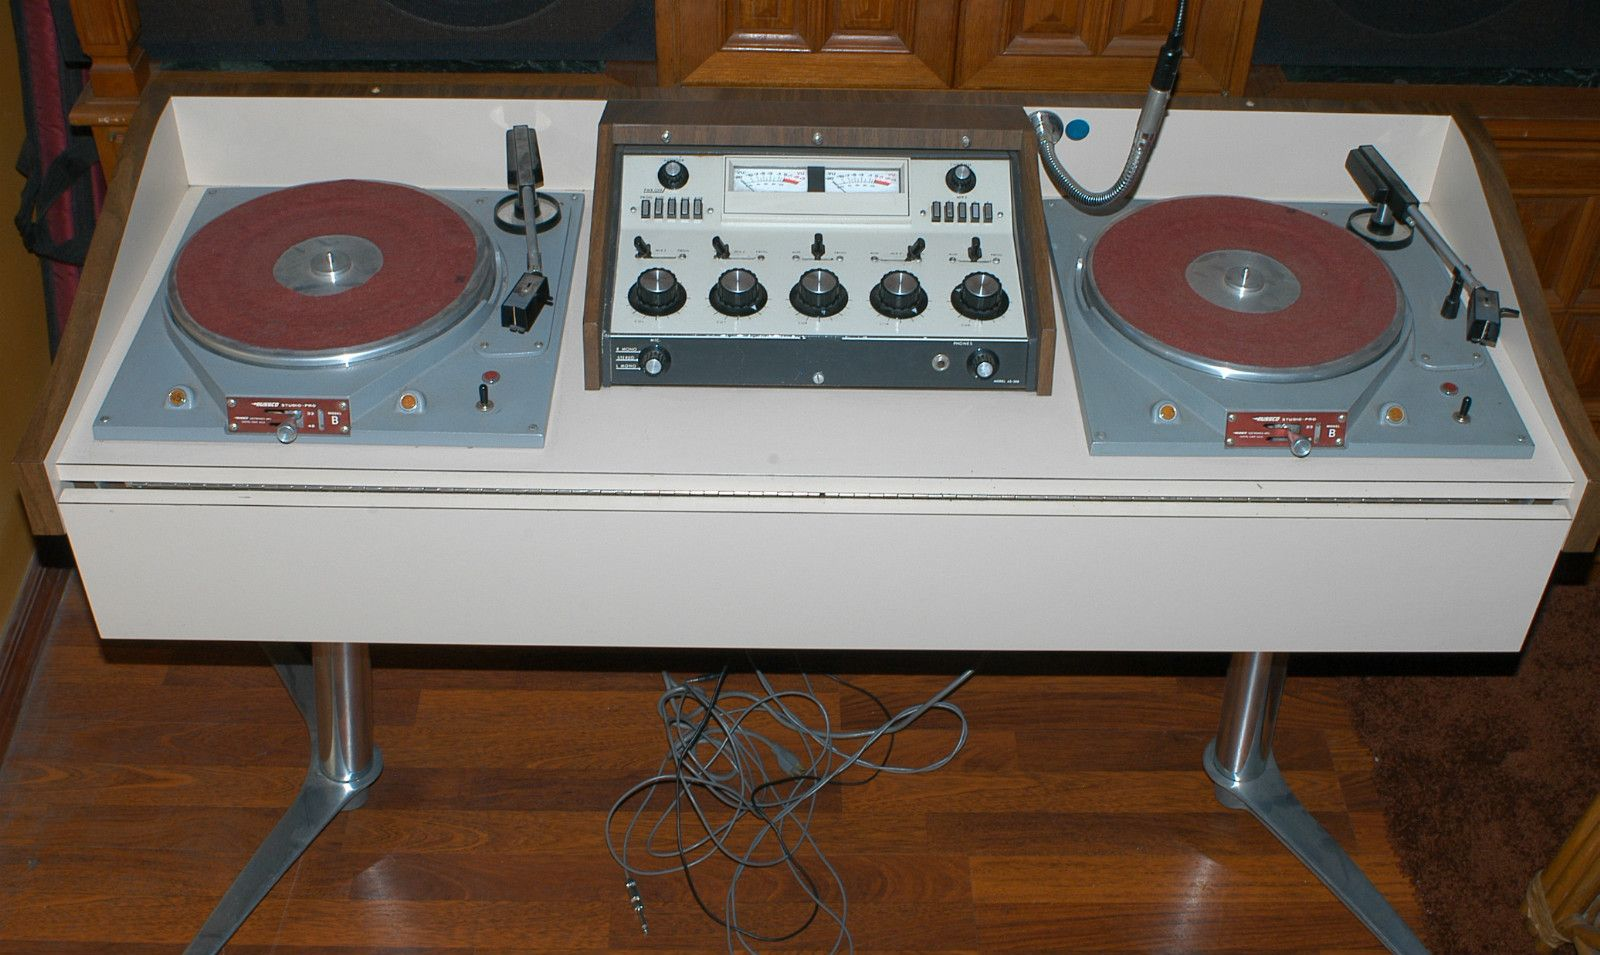 Vintage DJ? Yep, Iu0027ve Spun U0027em On Russco 3 Speeds, Myself! Ask Me If Iu0027d  Like To Own This Set Up! Hillbilly Hollywood Hotness!